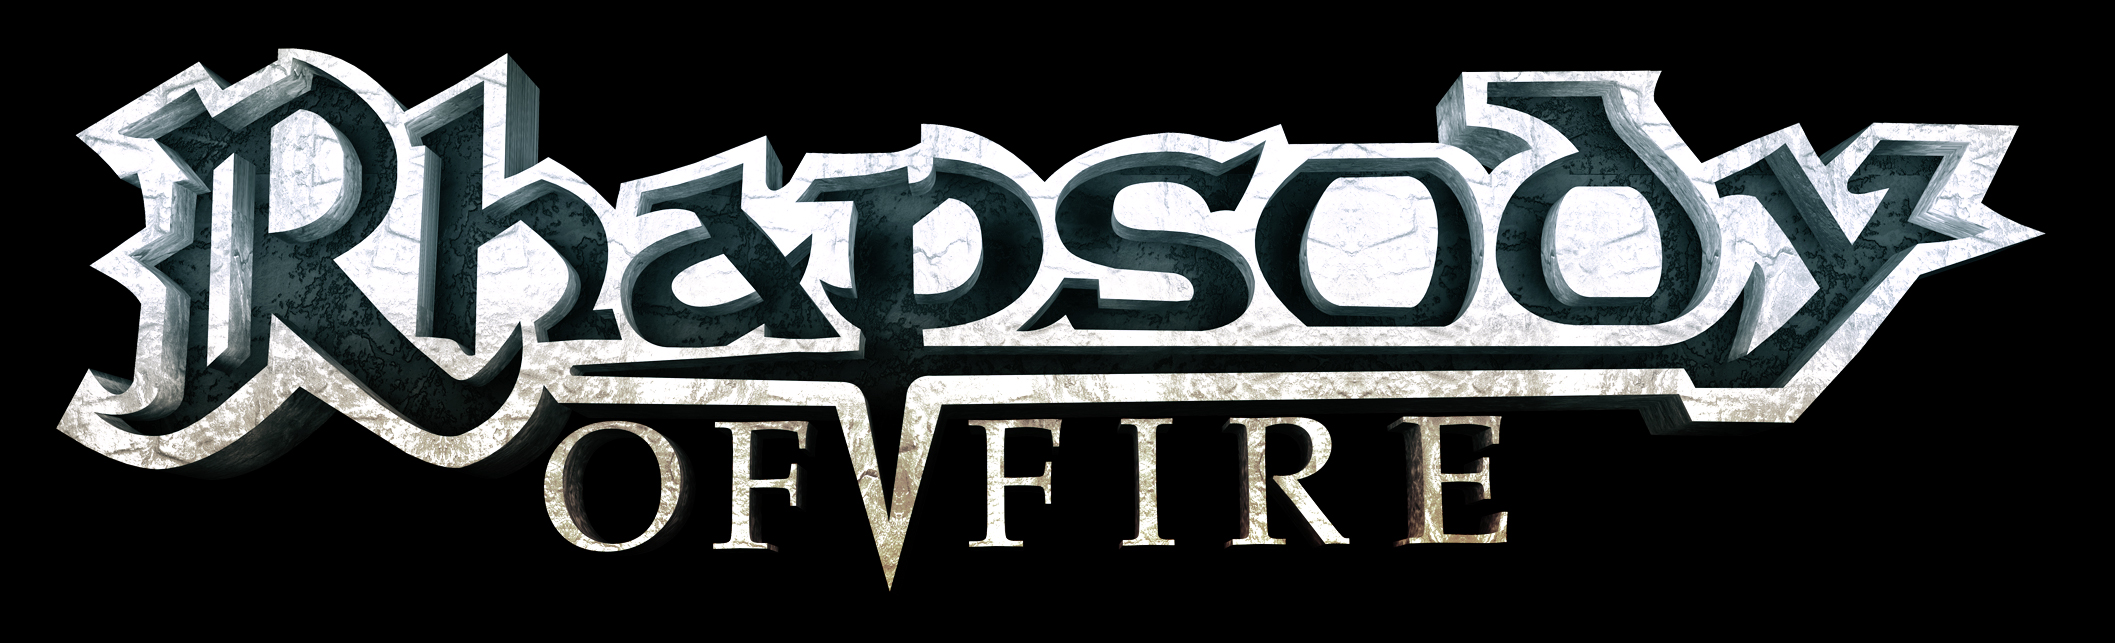 Rhapsody Of Fire Logo